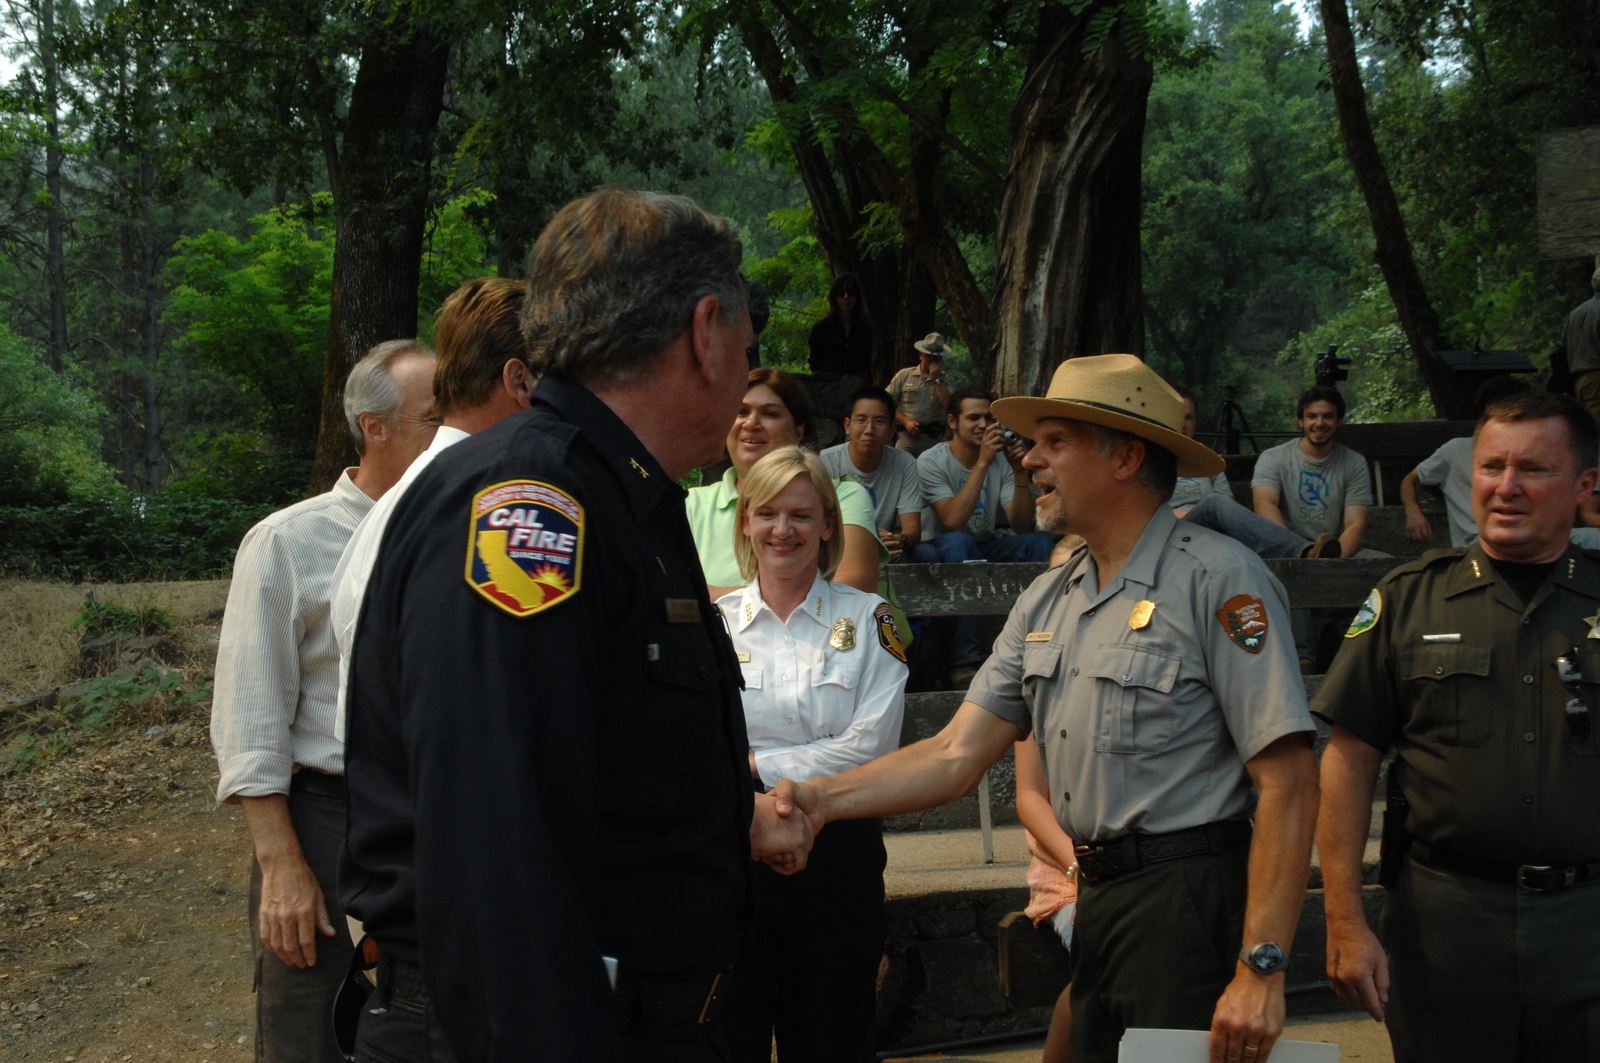 [Assignment: 48-DPA-06-27-08_SOI_K_CA_Fires_Gov] Visit of Secretary Dirk Kempthorne to the Whiskeytown Base in the Whiskeytown National Recreation Area in northern California, where he joined California Governor Arnold Schwarzenegger [and other officials, National Park Service personnel, and firefighters at a briefing on the] Whiskeytown Complex fires [and the status of firefighting efforts throughout the state] [48-DPA-06-27-08_SOI_K_CA_Fires_Gov_IOD_7685.JPG]